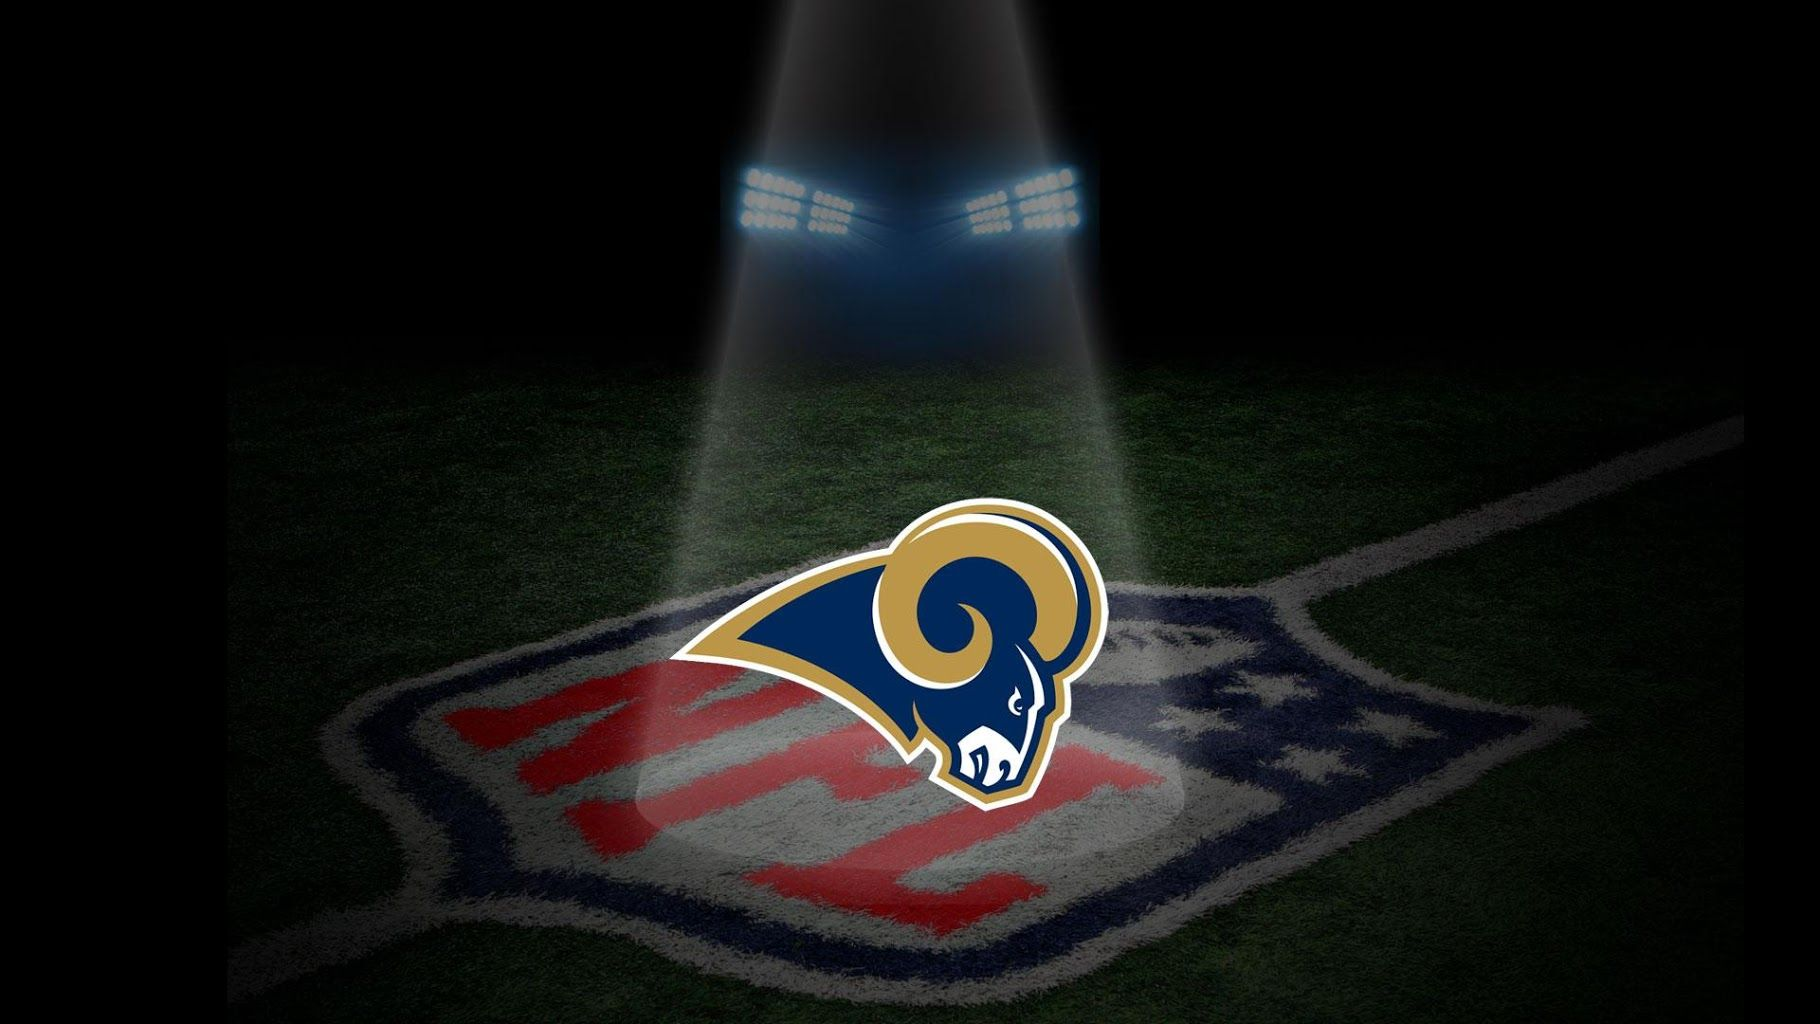 Los Angeles Rams Wallpaper 14657 1820x1024 px ~ HDWallSource.com